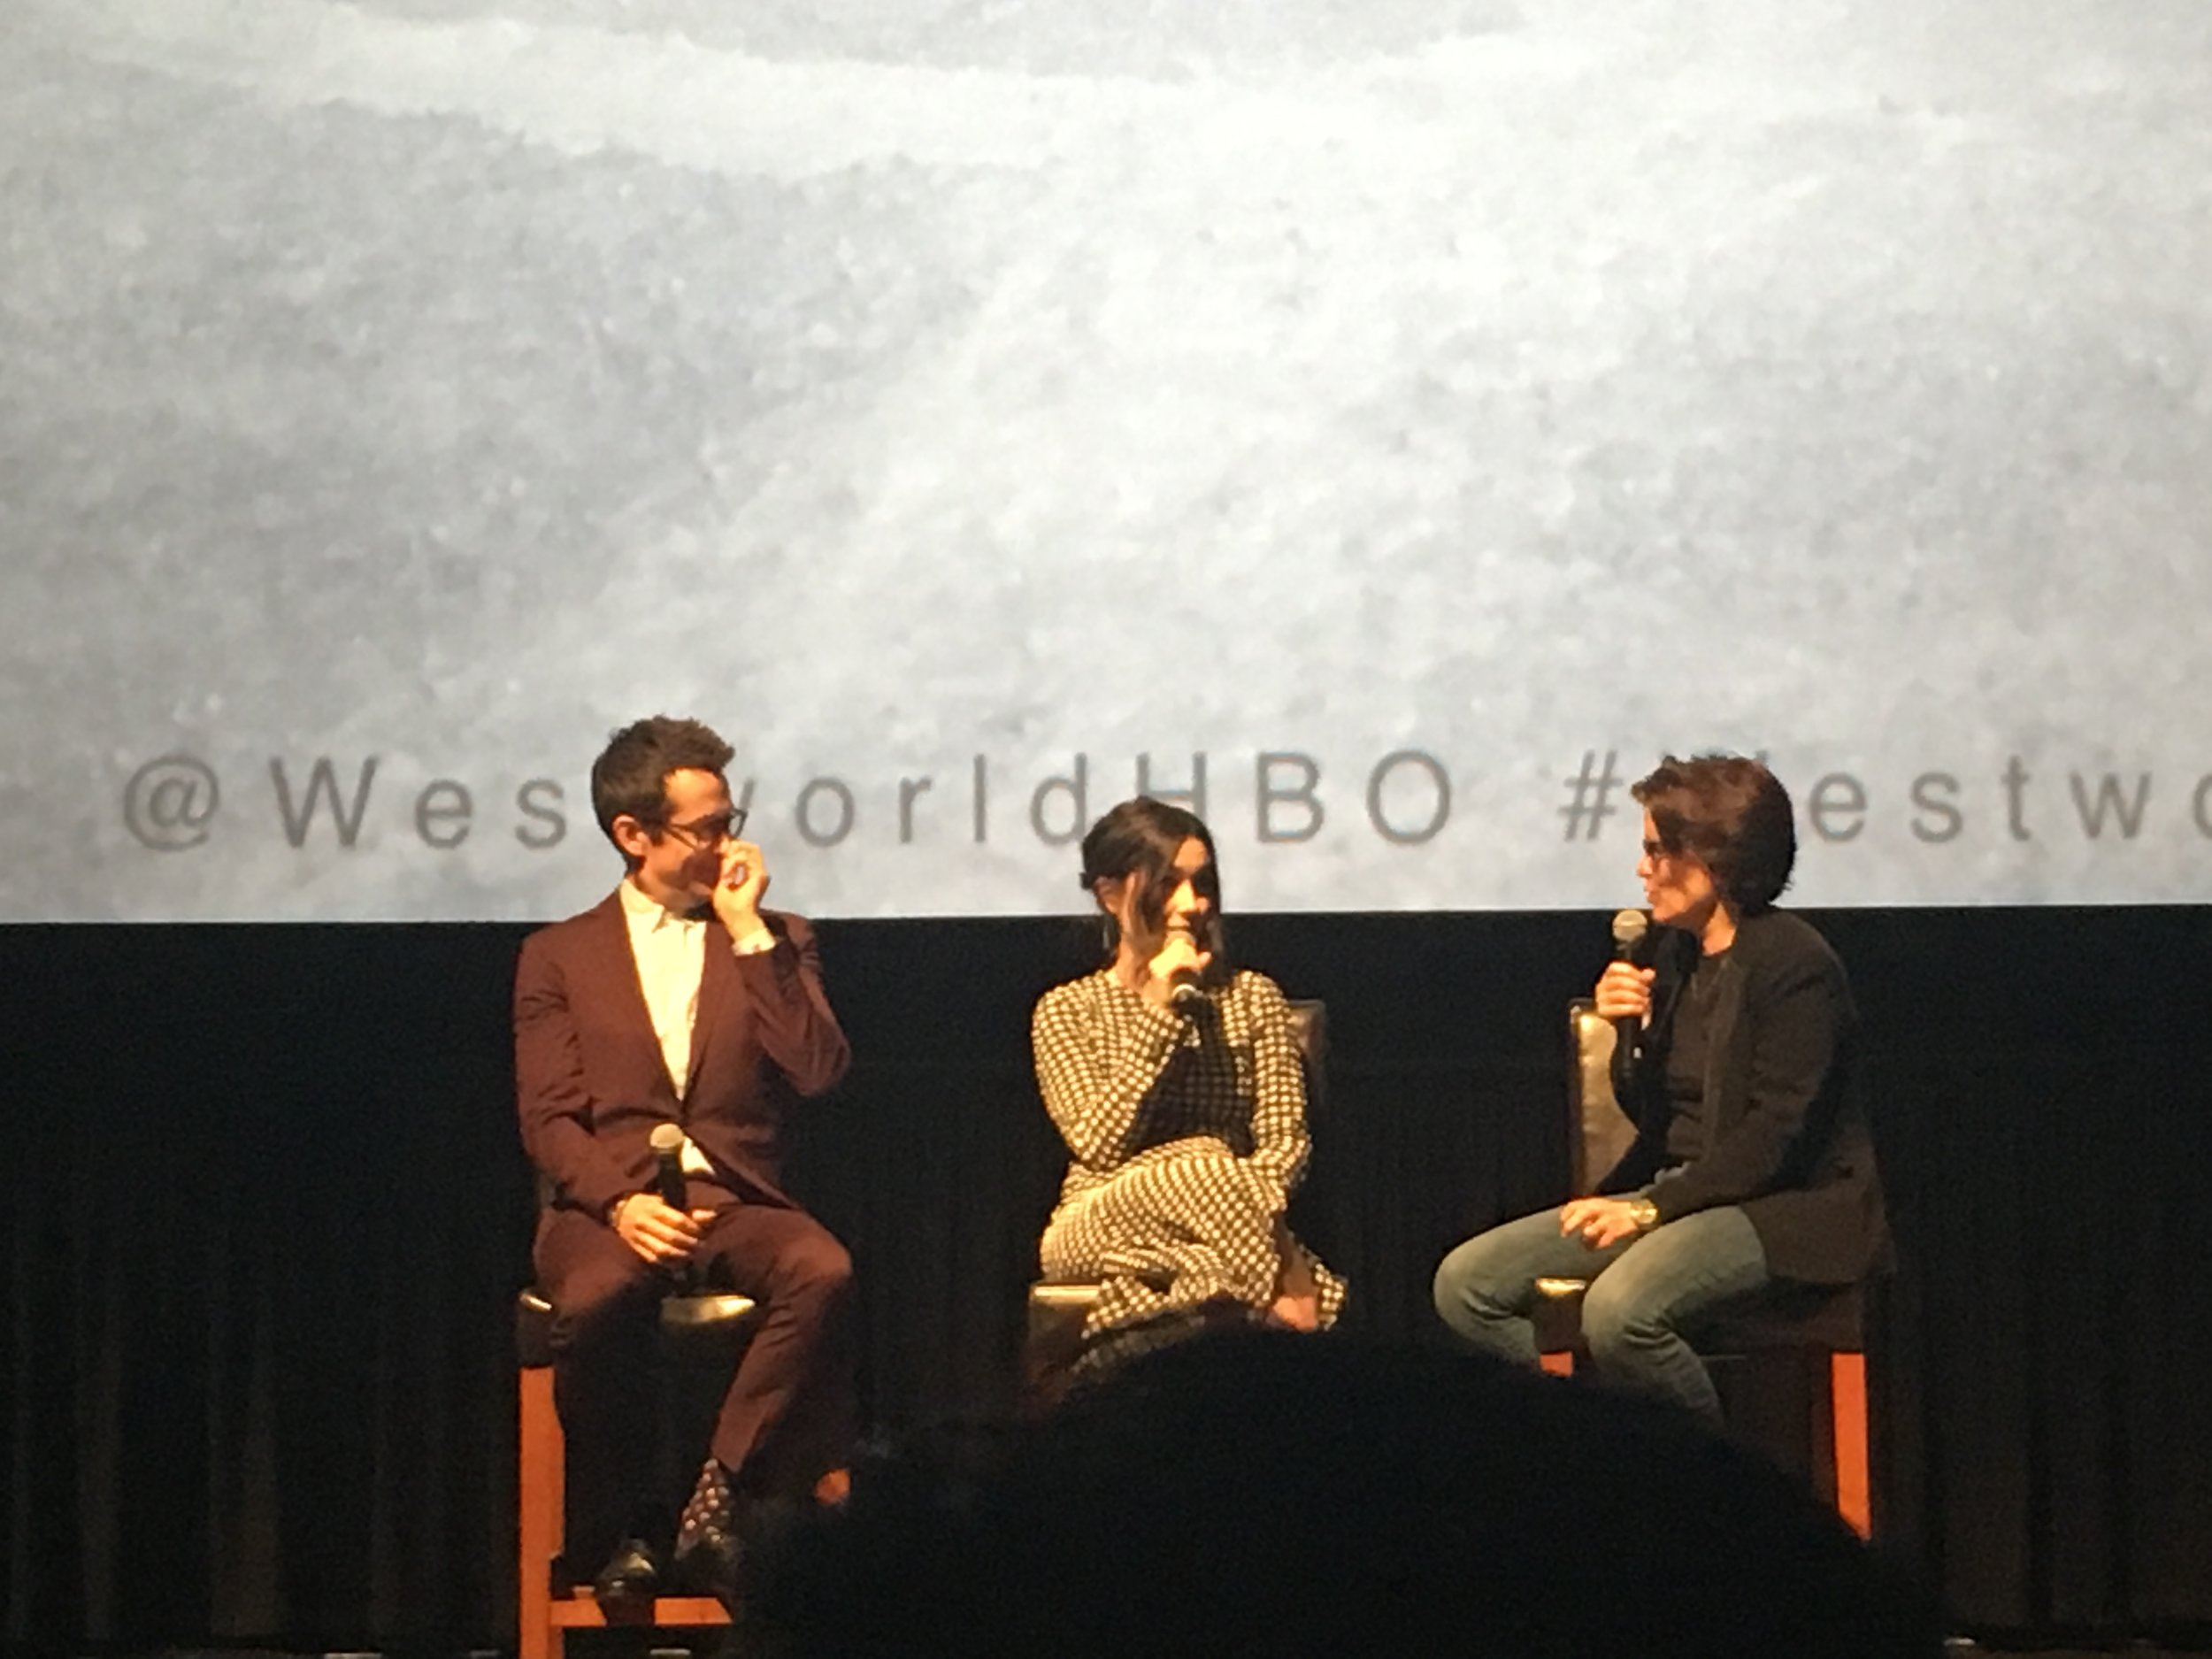 Simon Quarterman (Lee Sizemore) and Shannon Woodward (Elsie Hughes) discuss ethics in Robotics and tech at the Westworld Season 2 Premiere at the AMC Kabuki 8 Theater in San Francisco. The panel was moderated by Kara Swisher from Recode